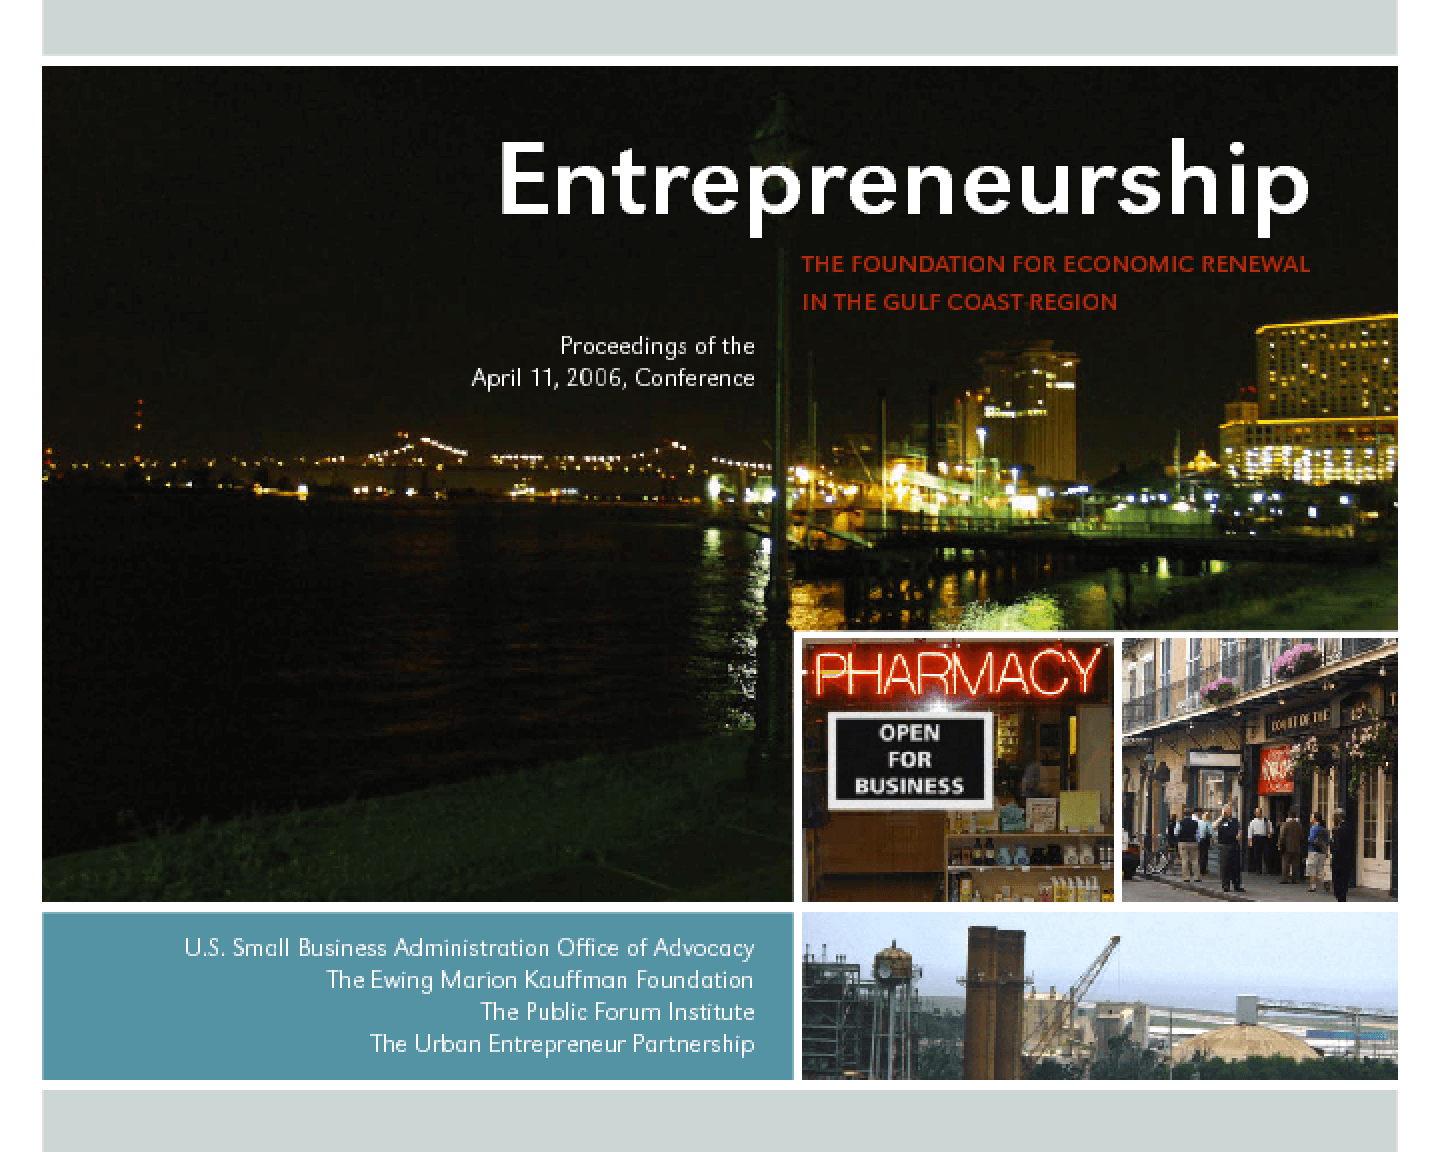 Entrepreneurship -- The Foundation for Economic Renewal in the Gulf Coast Region